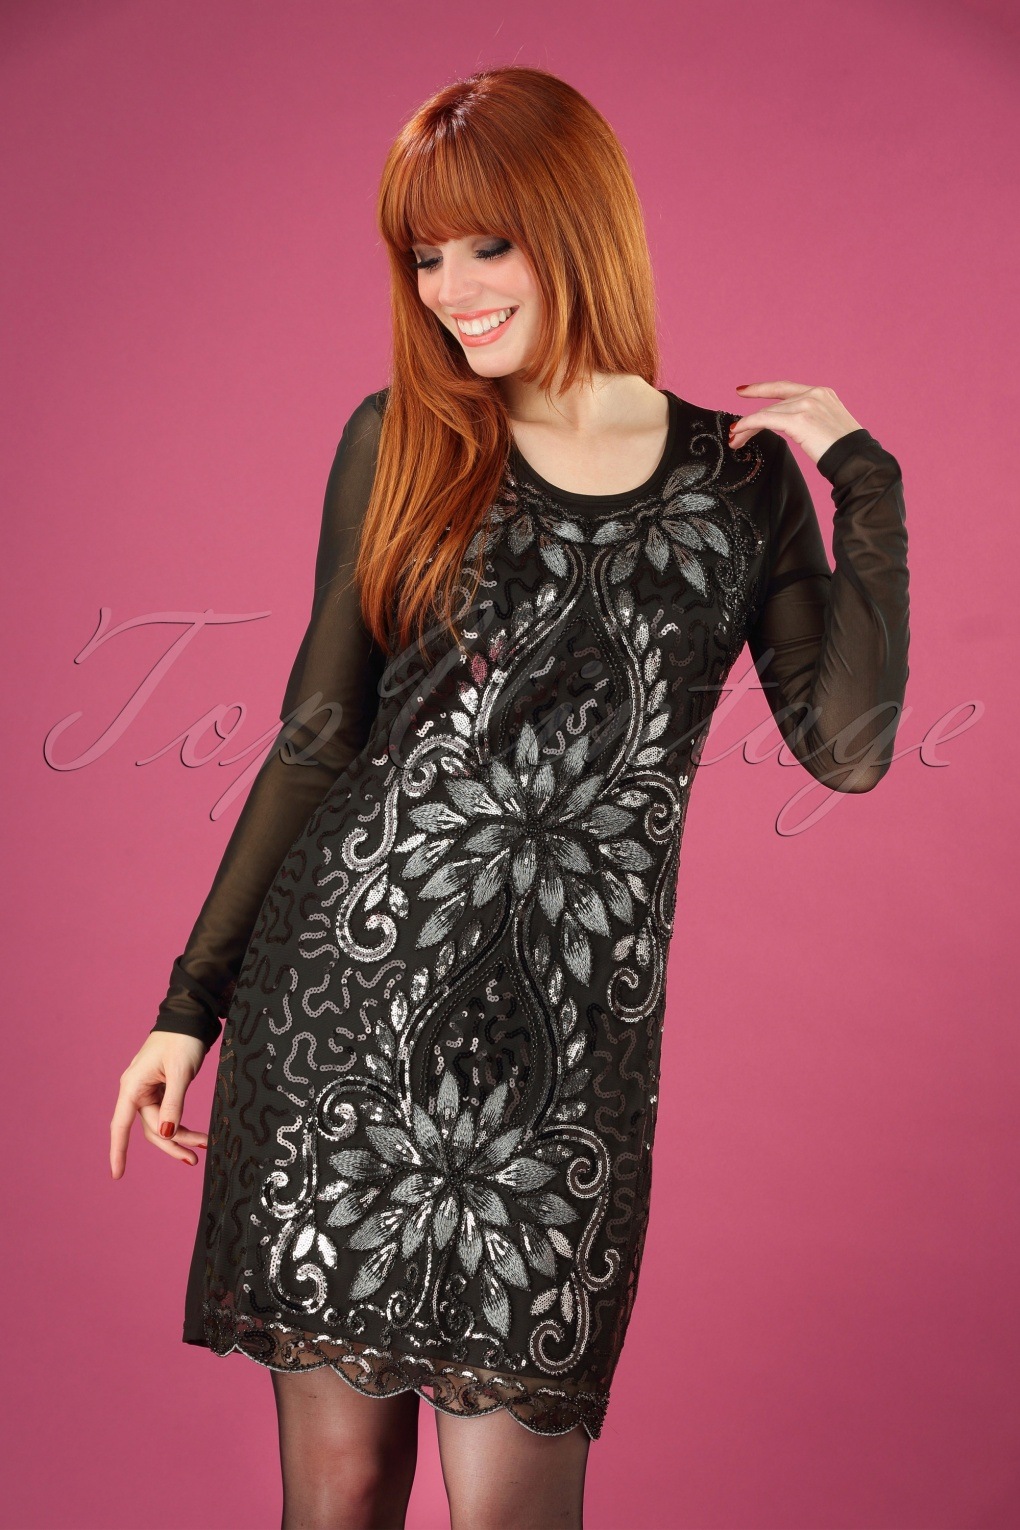 Vintage Inspired Dresses & Clothing UK 20s Lillian Sequin Dress in Black £53.44 AT vintagedancer.com